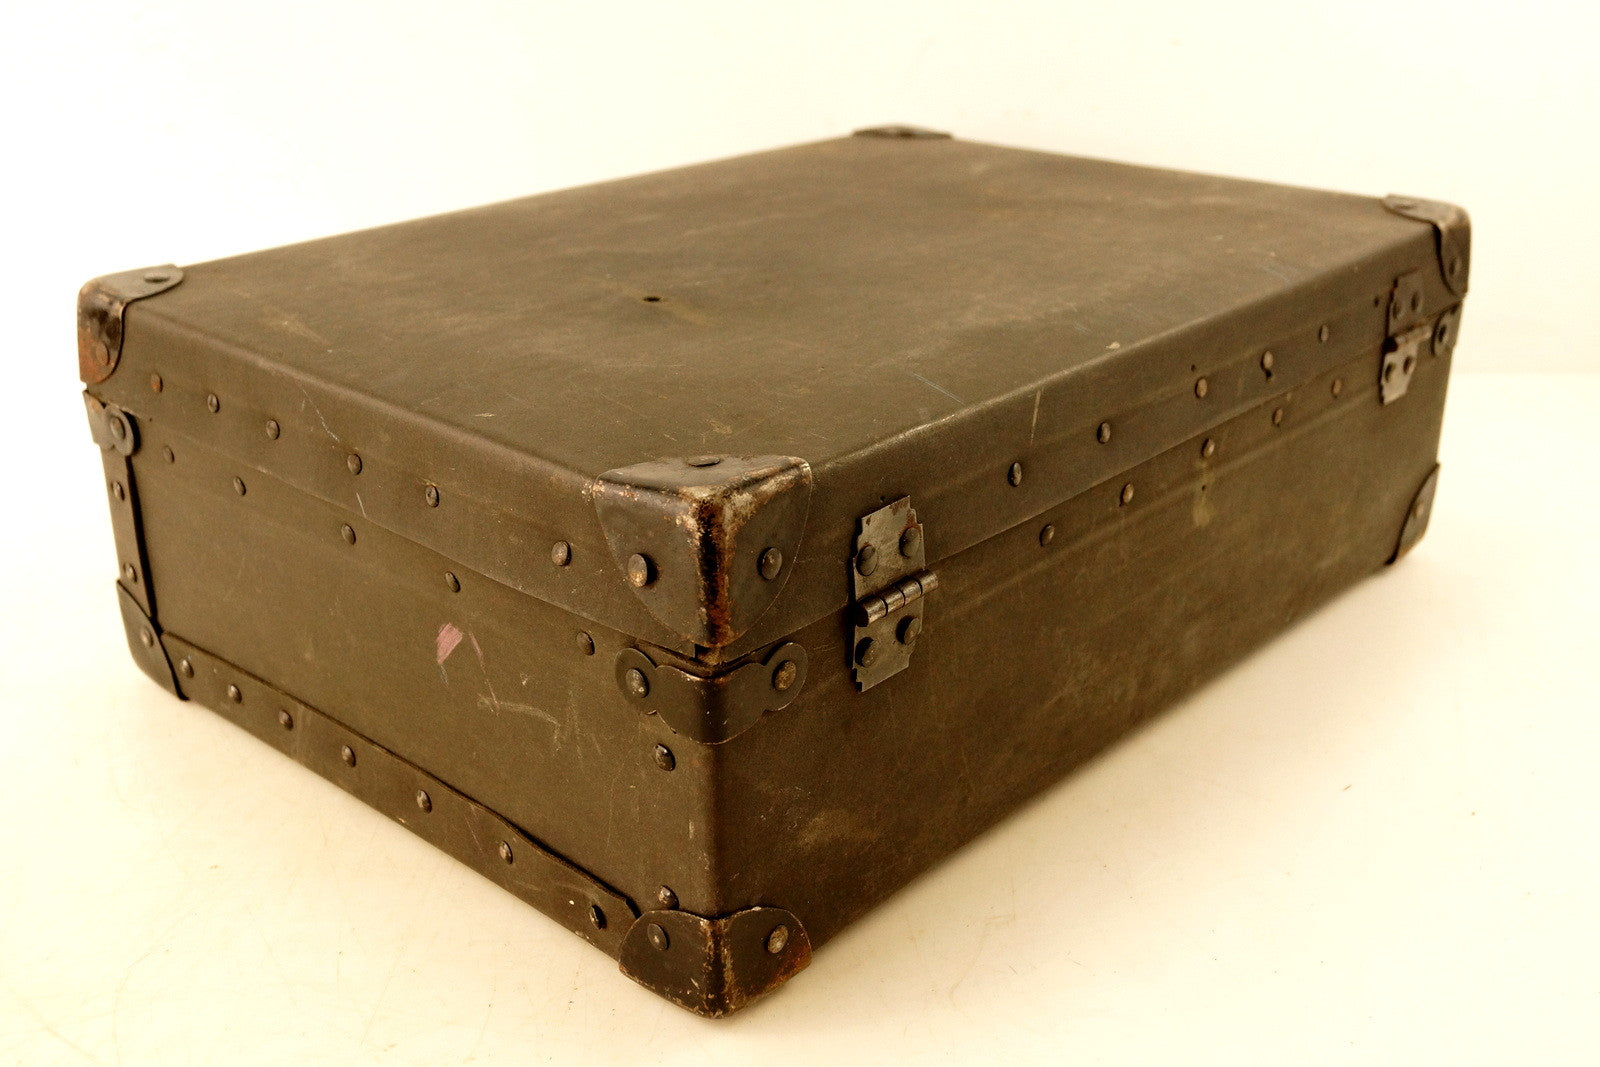 ... Vintage Black Suitcase With Black Metal Corners And Leather Handle  (c.1930s) ...